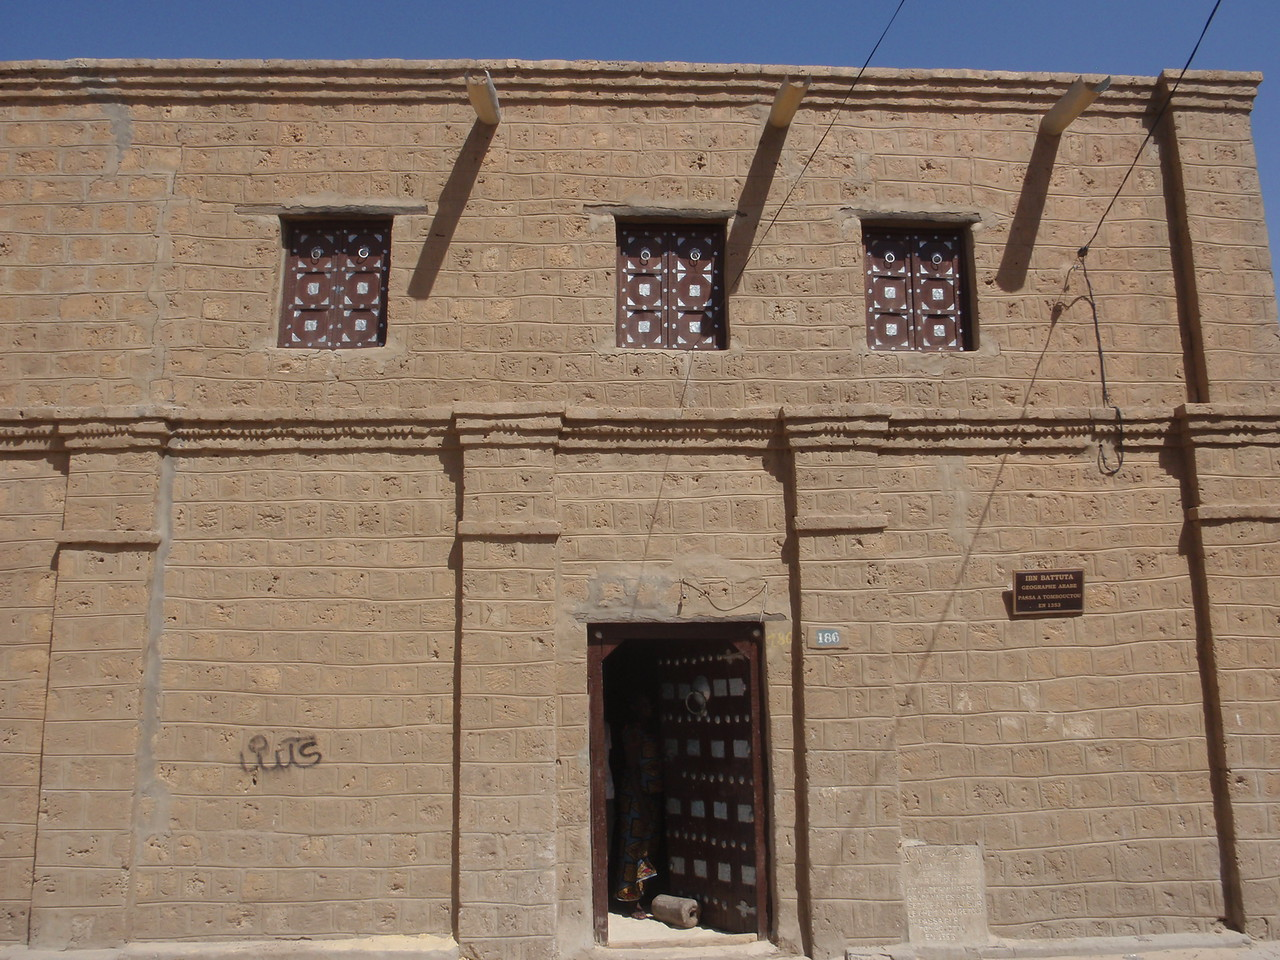 075_Residence of Ibn Battuta, Arab Geographer  Stay here in 1353